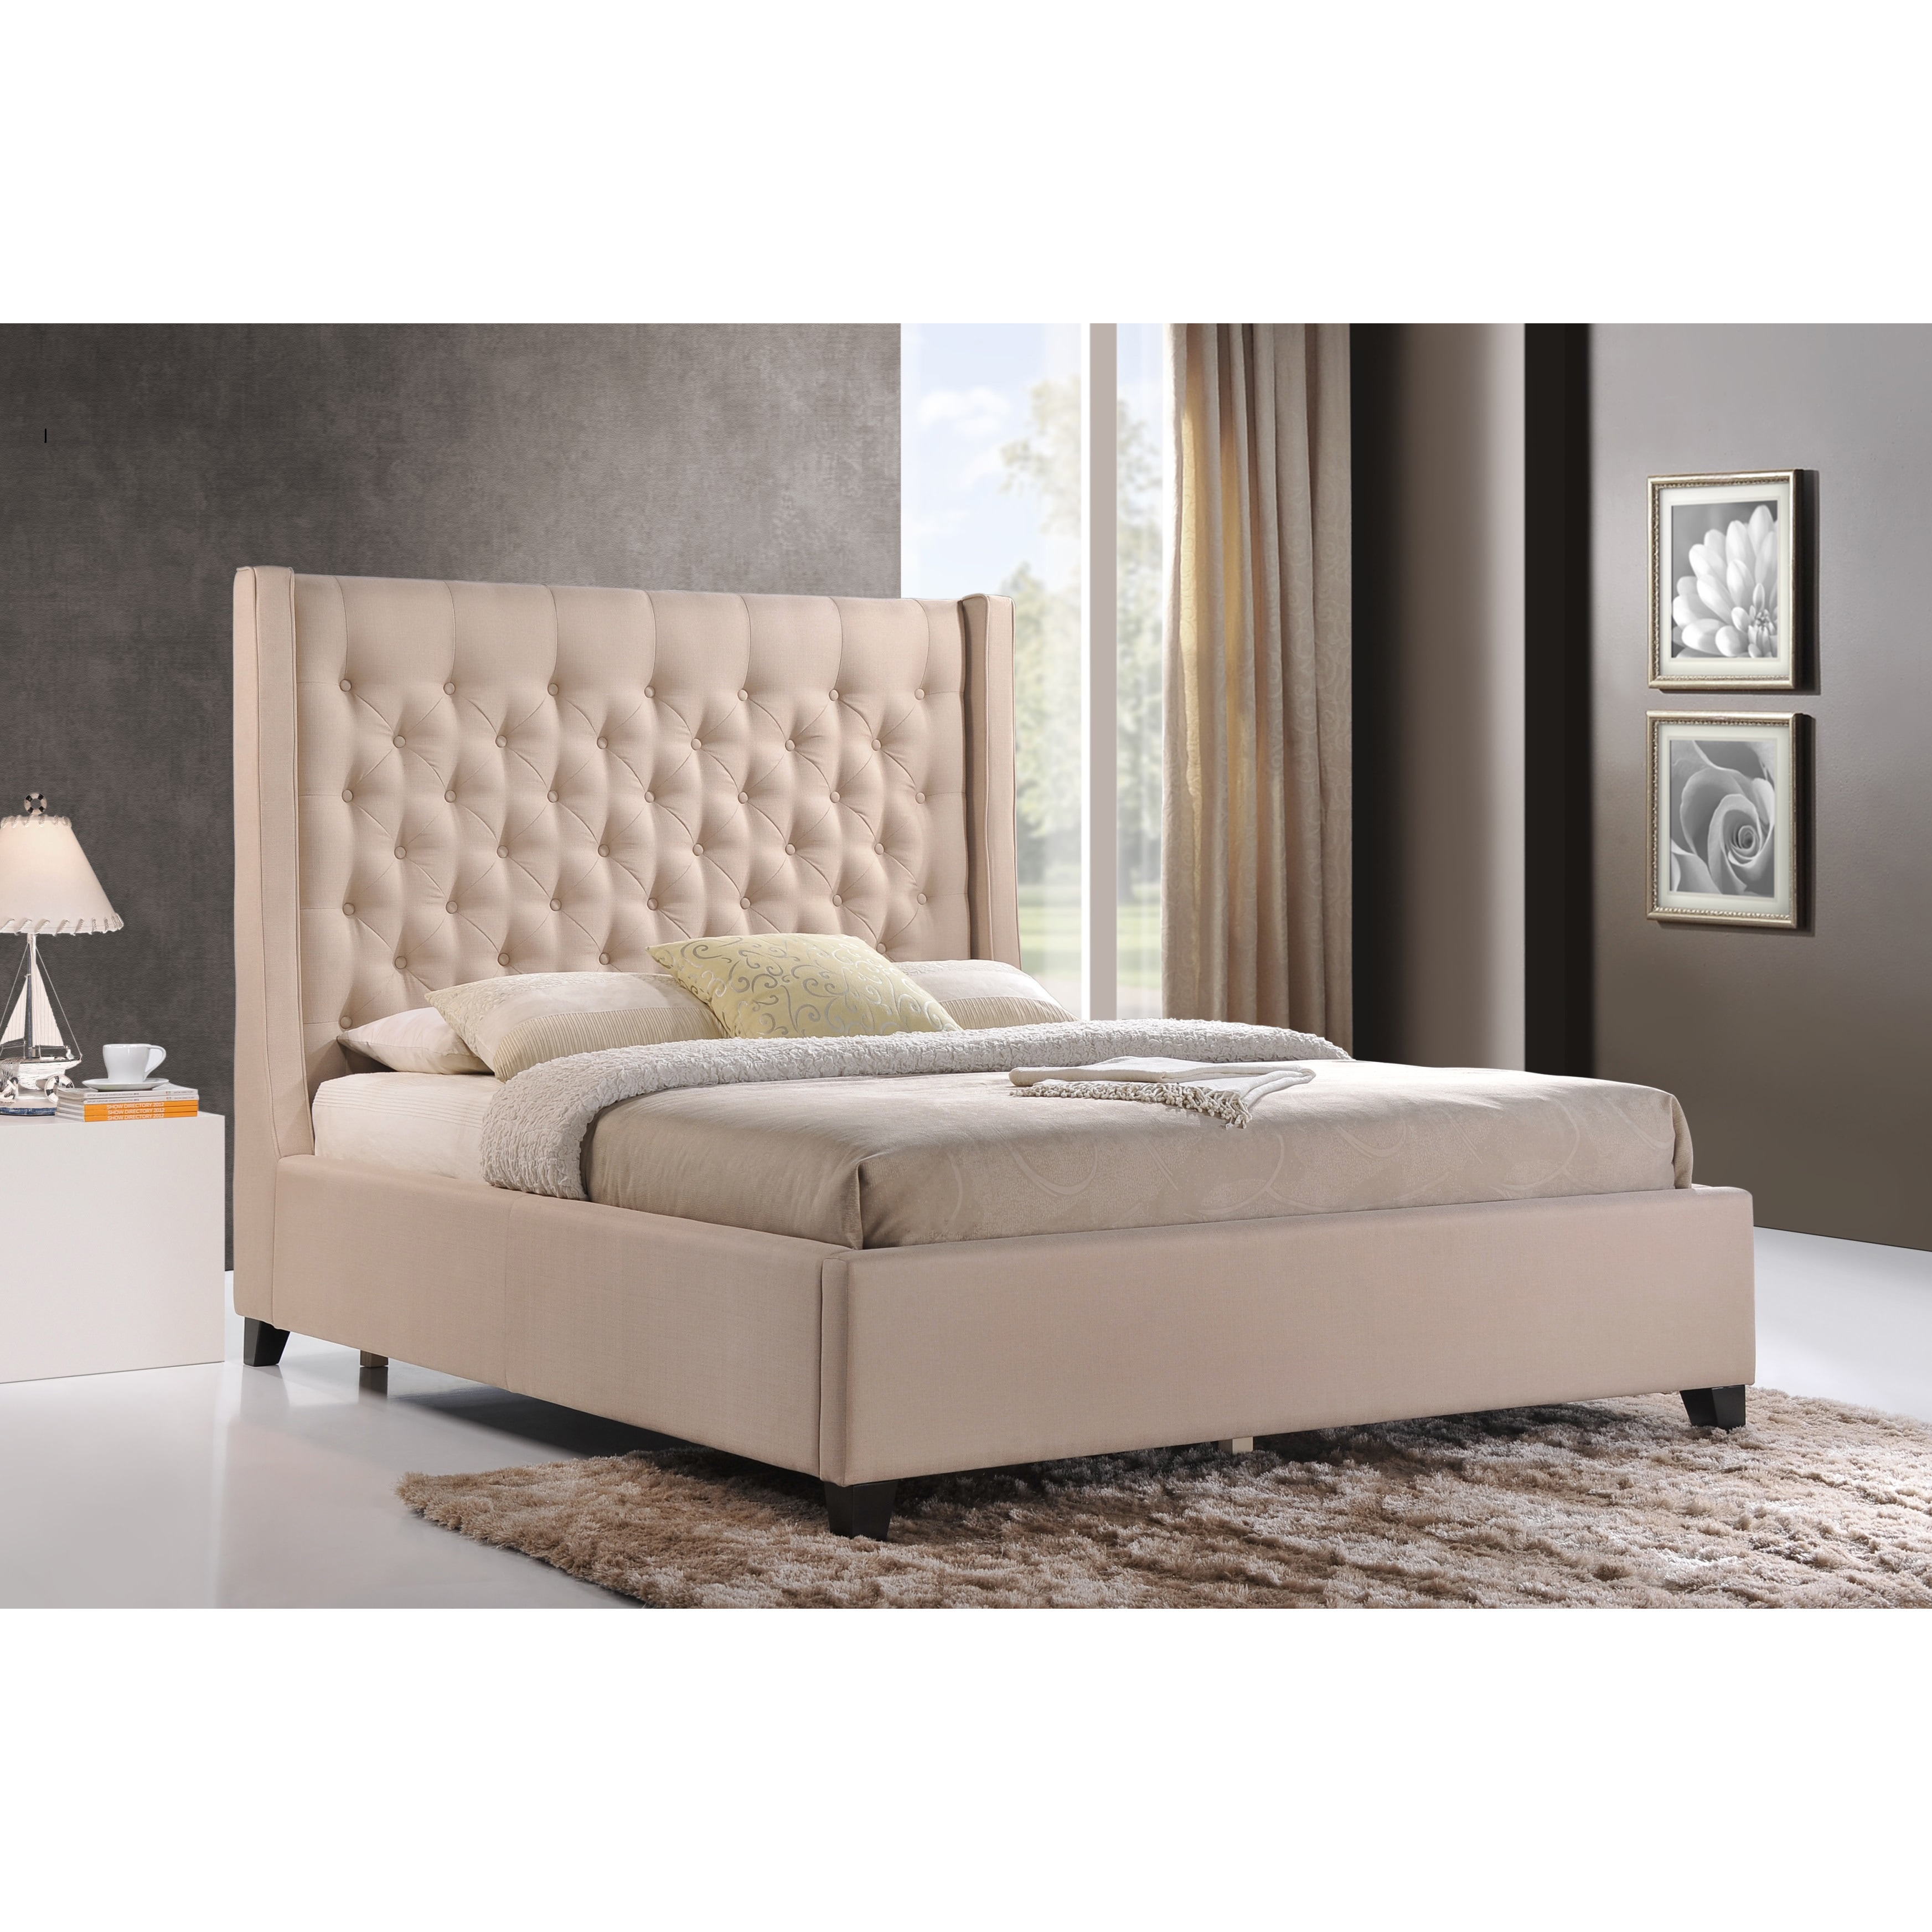 Luxeo Huntington King Size Tufted Upholstered Bed In Sand Color